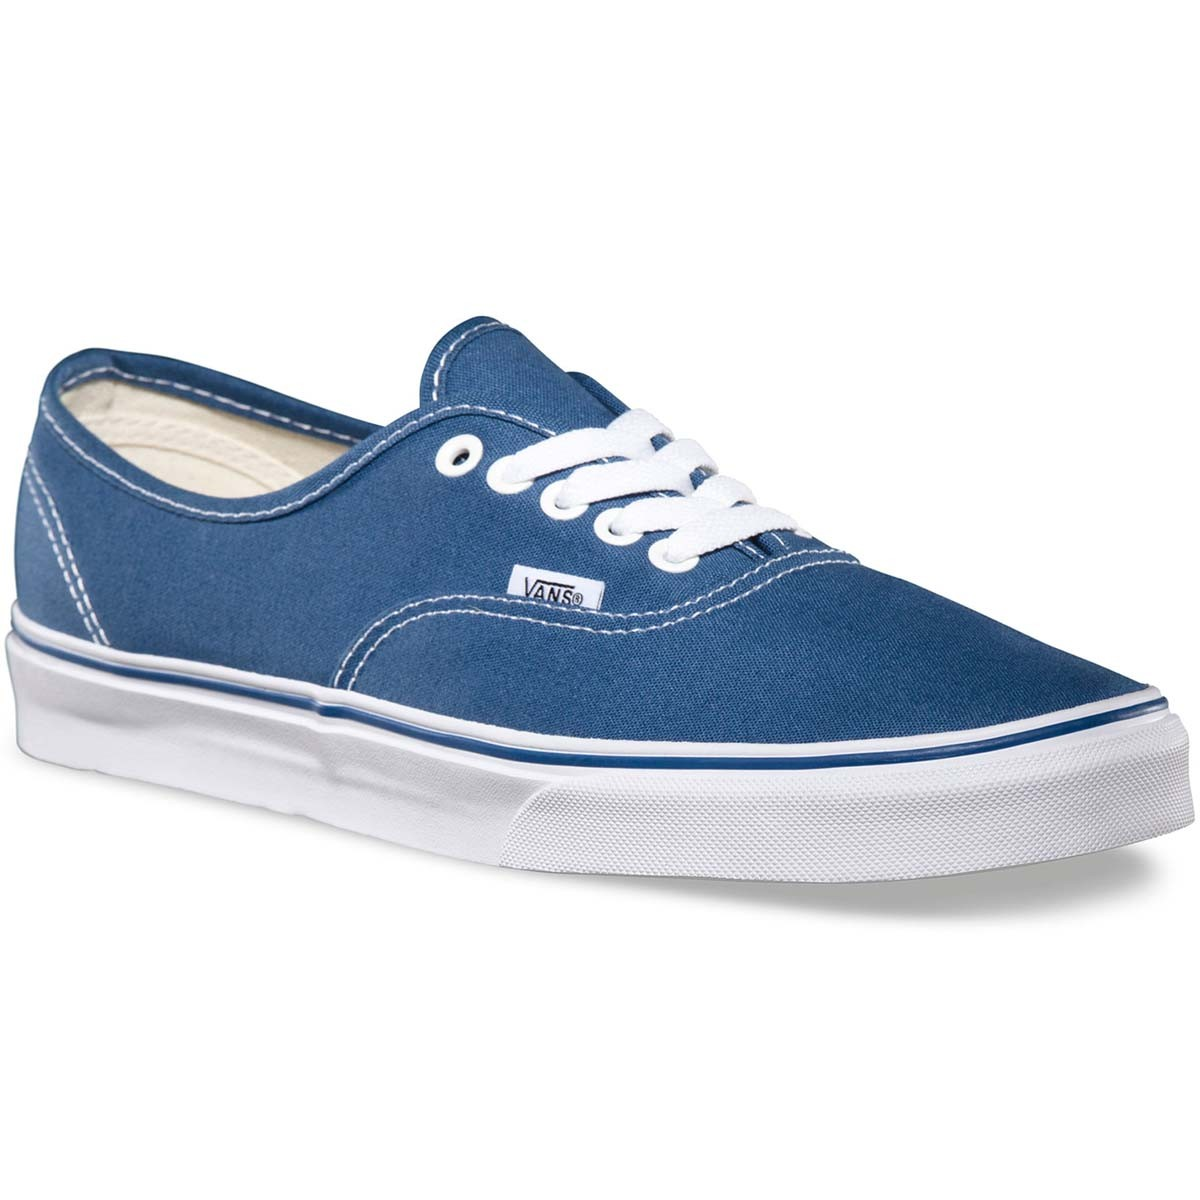 Vans Original Authentic Shoes - Navy 14.0